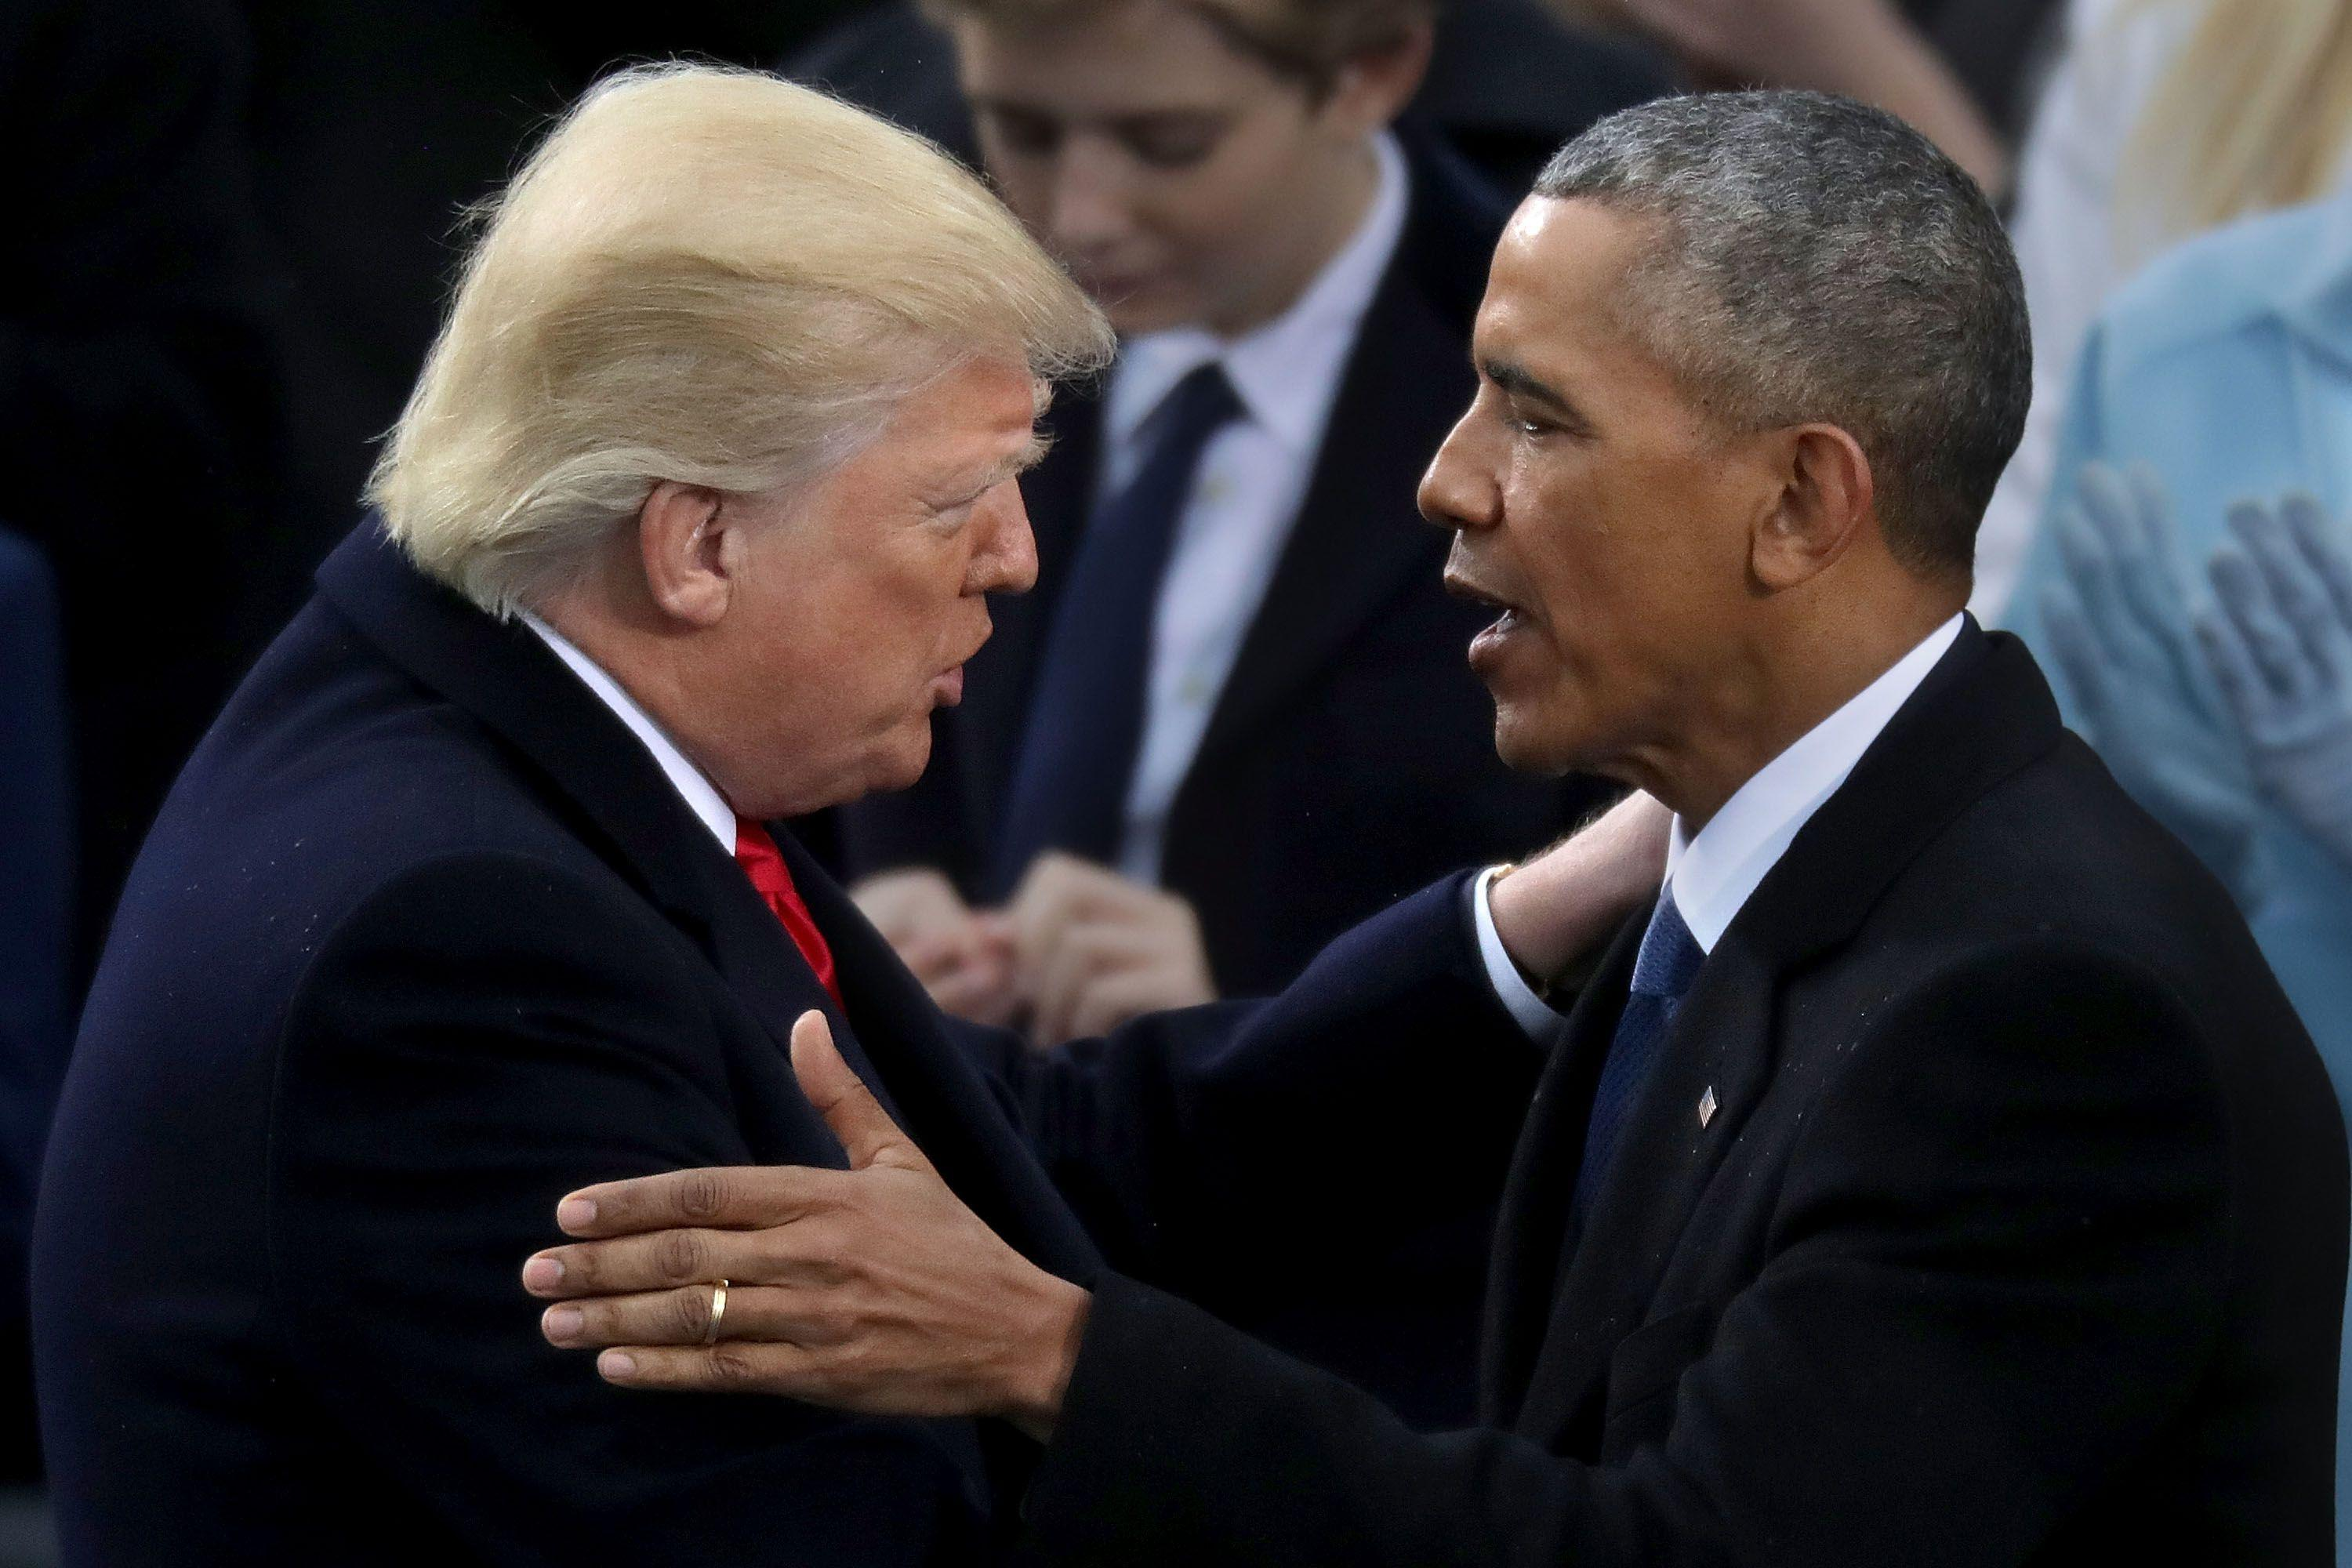 In Obama's shadow: Facing historic failures, Trump chronically shifts blame to his predecessor